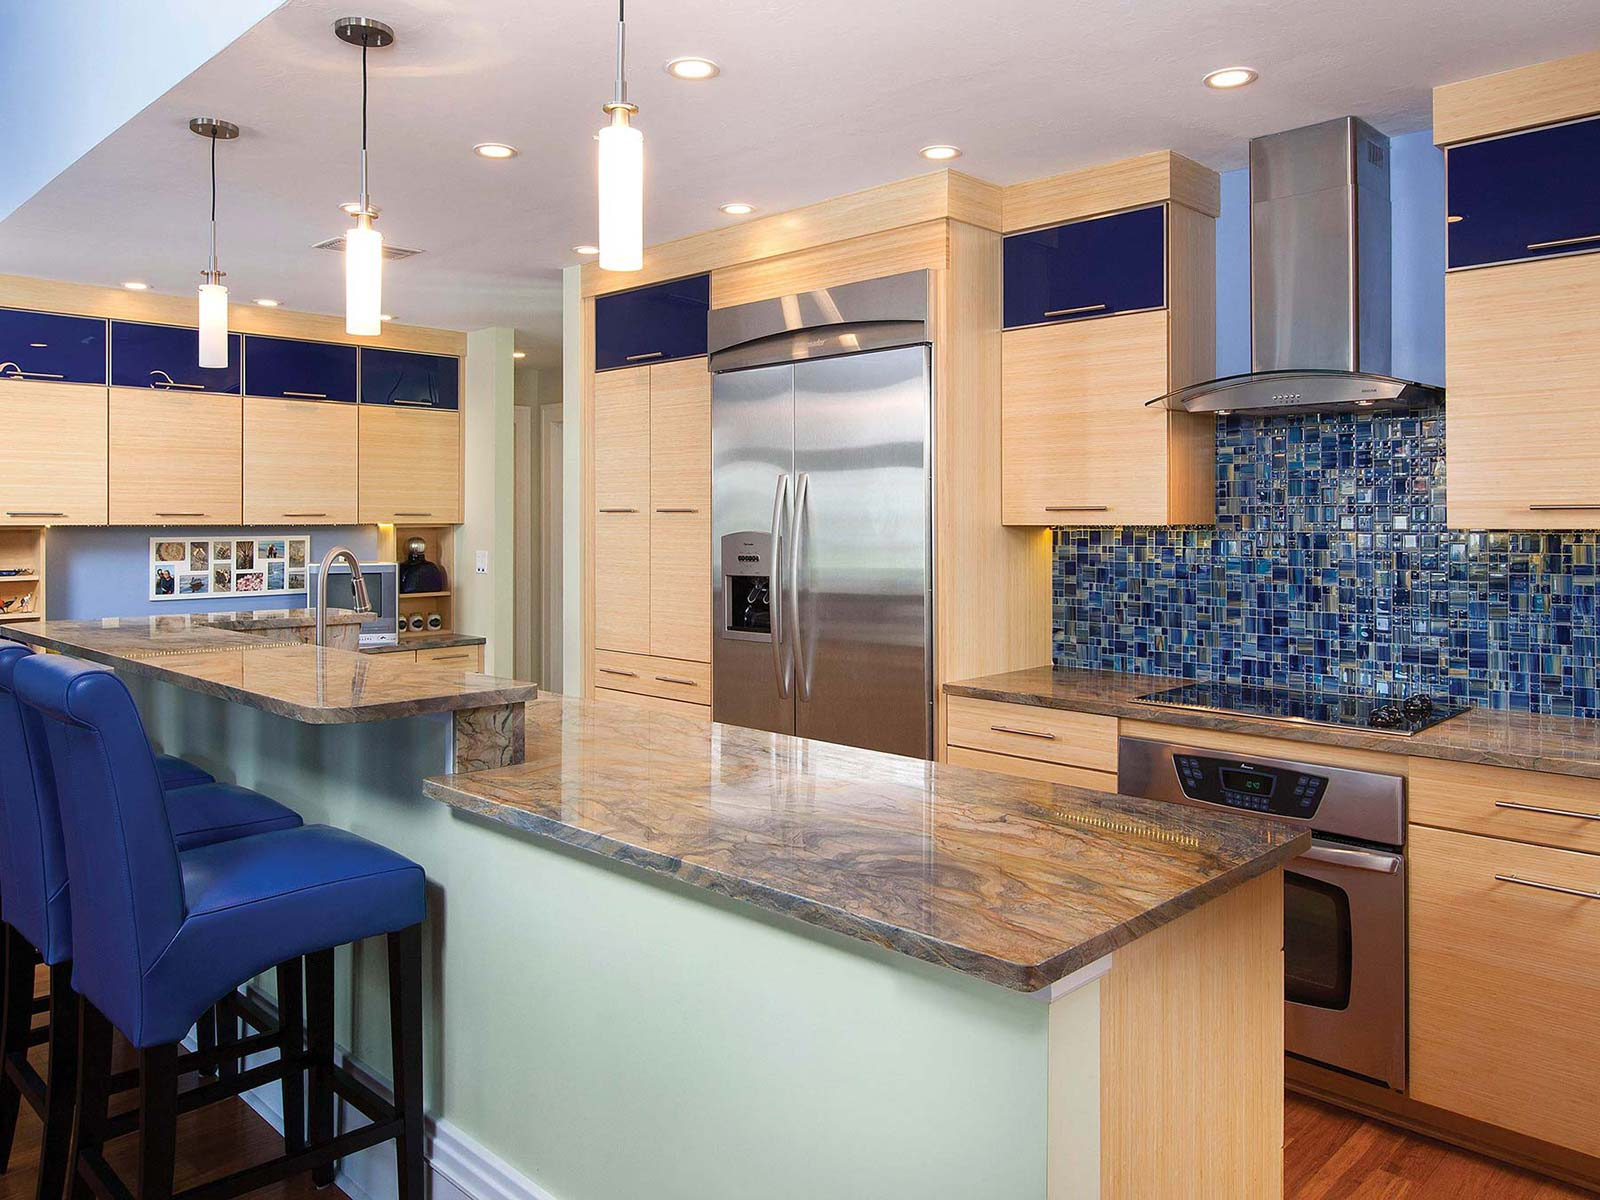 kitchen cabnits island with built in stove cabinets and accessories bertch cabinet manfacturing inspiration